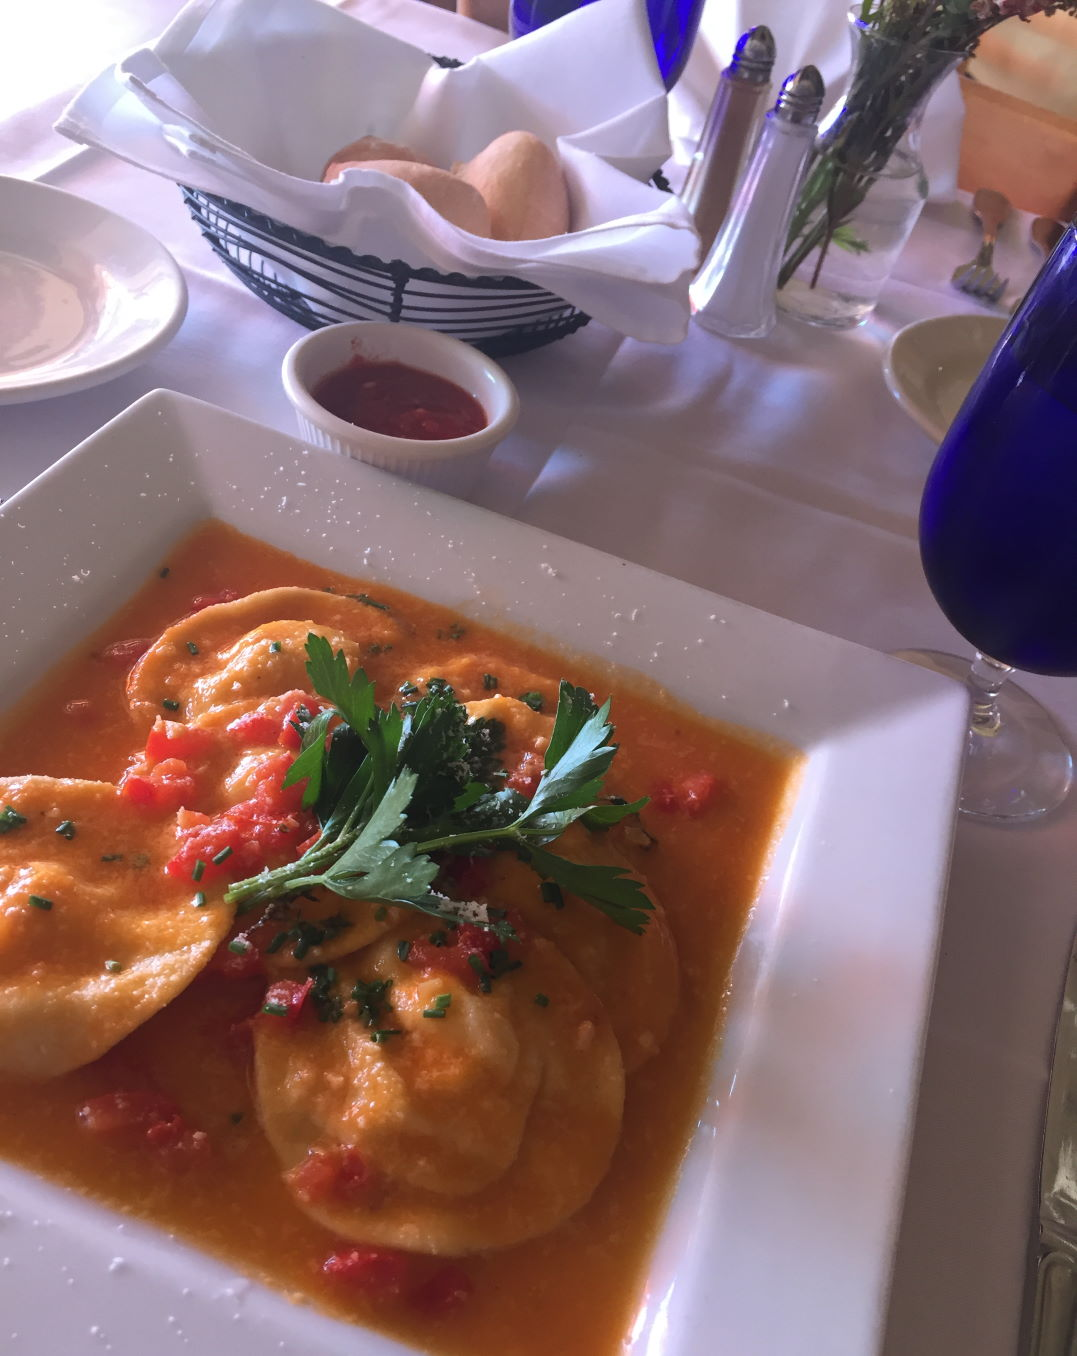 Homemade ravioli in a tomato sauce at Trattoria Positano, Cardiff-by-the-Sea